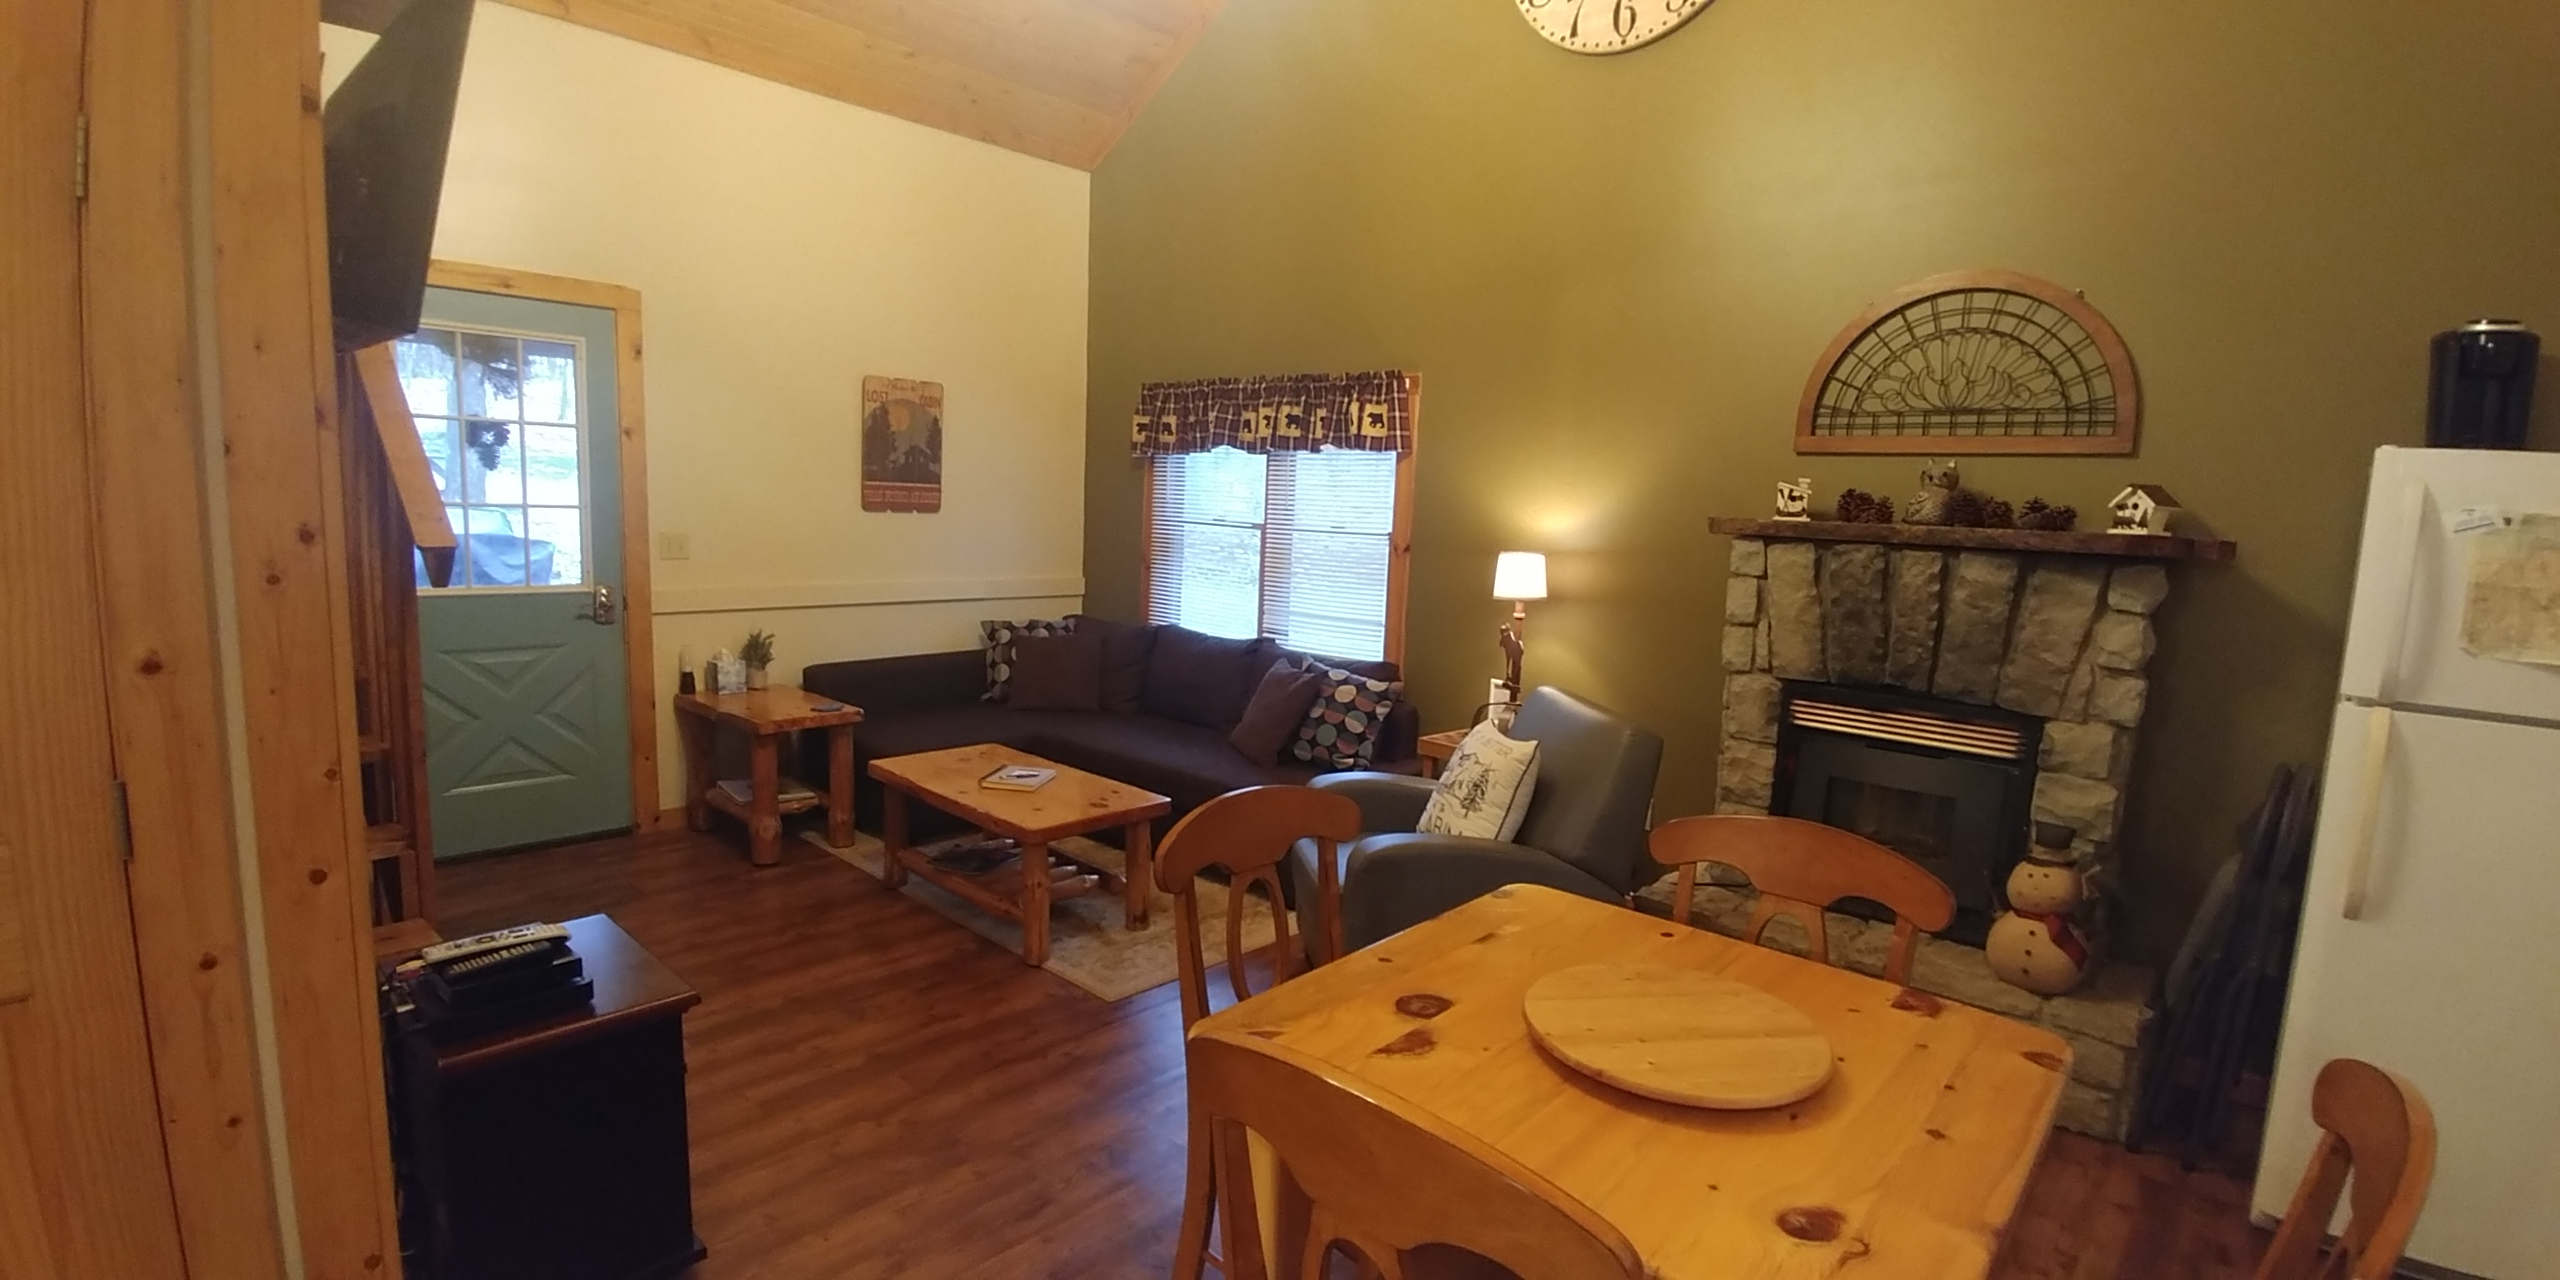 Dining and living room - Mingo has a sectional couch, fireplace and cozy dining space